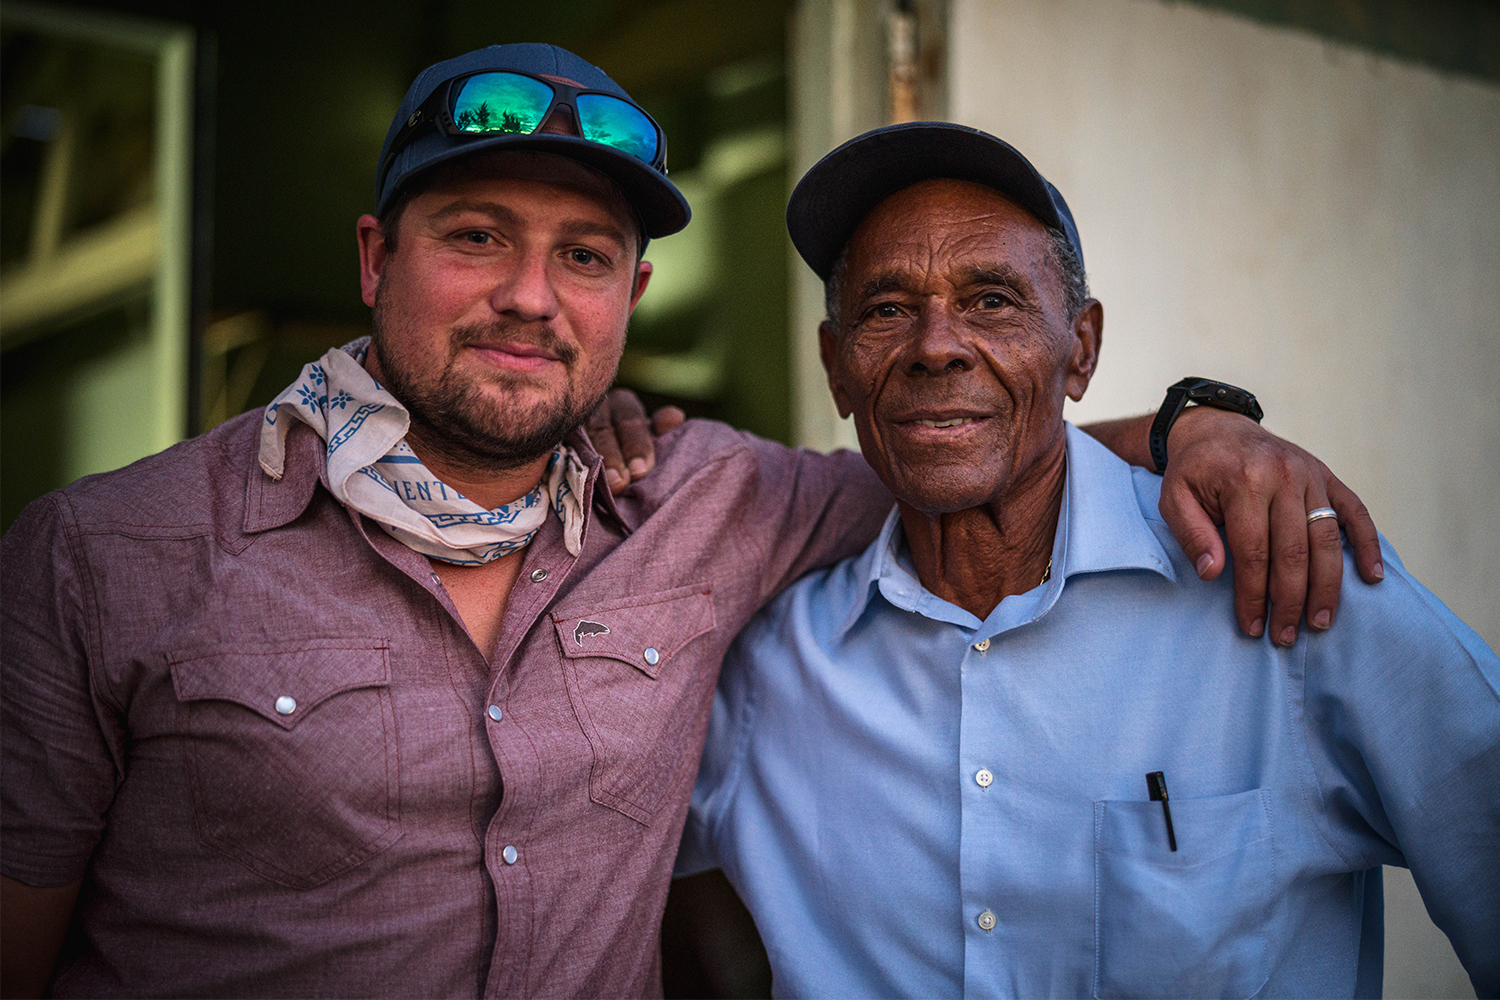 Director Shannon Vandivier and fly fishing guide Ansil Saunders